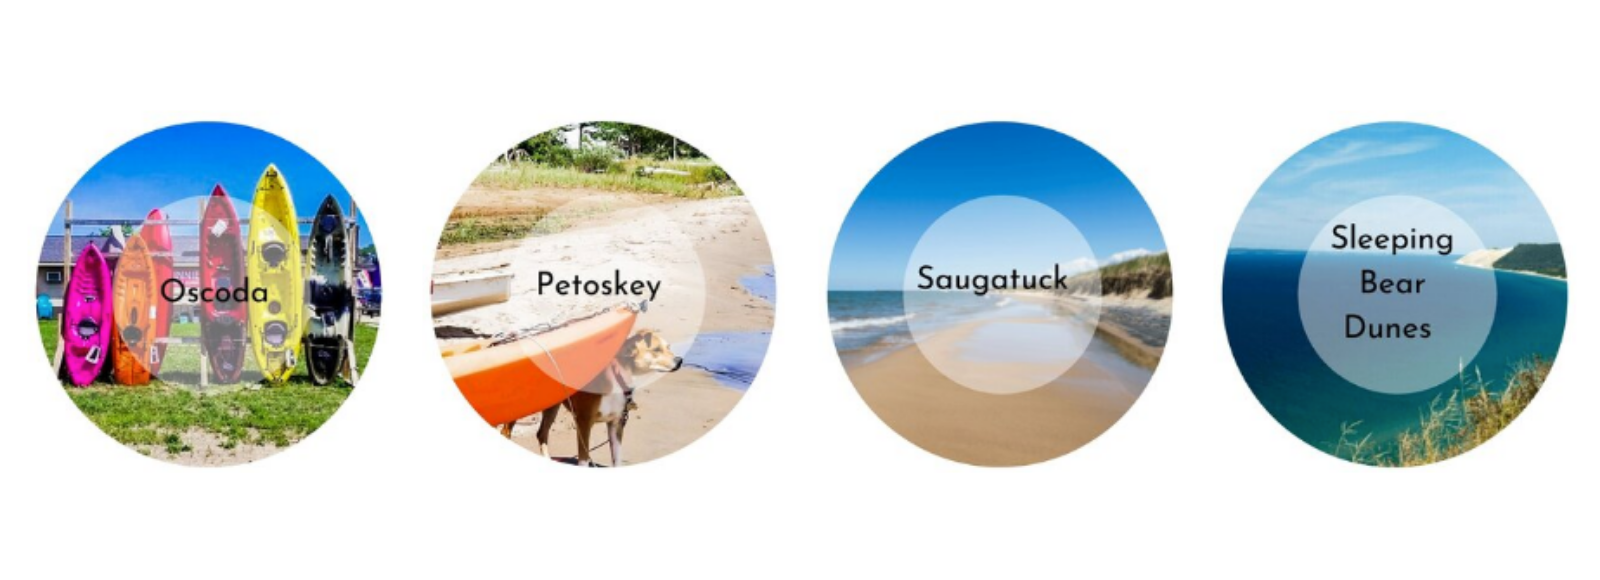 Decorative images of Michigan beaches, each displayed in a colorful circle with the name of a beach town in the center of the circle.